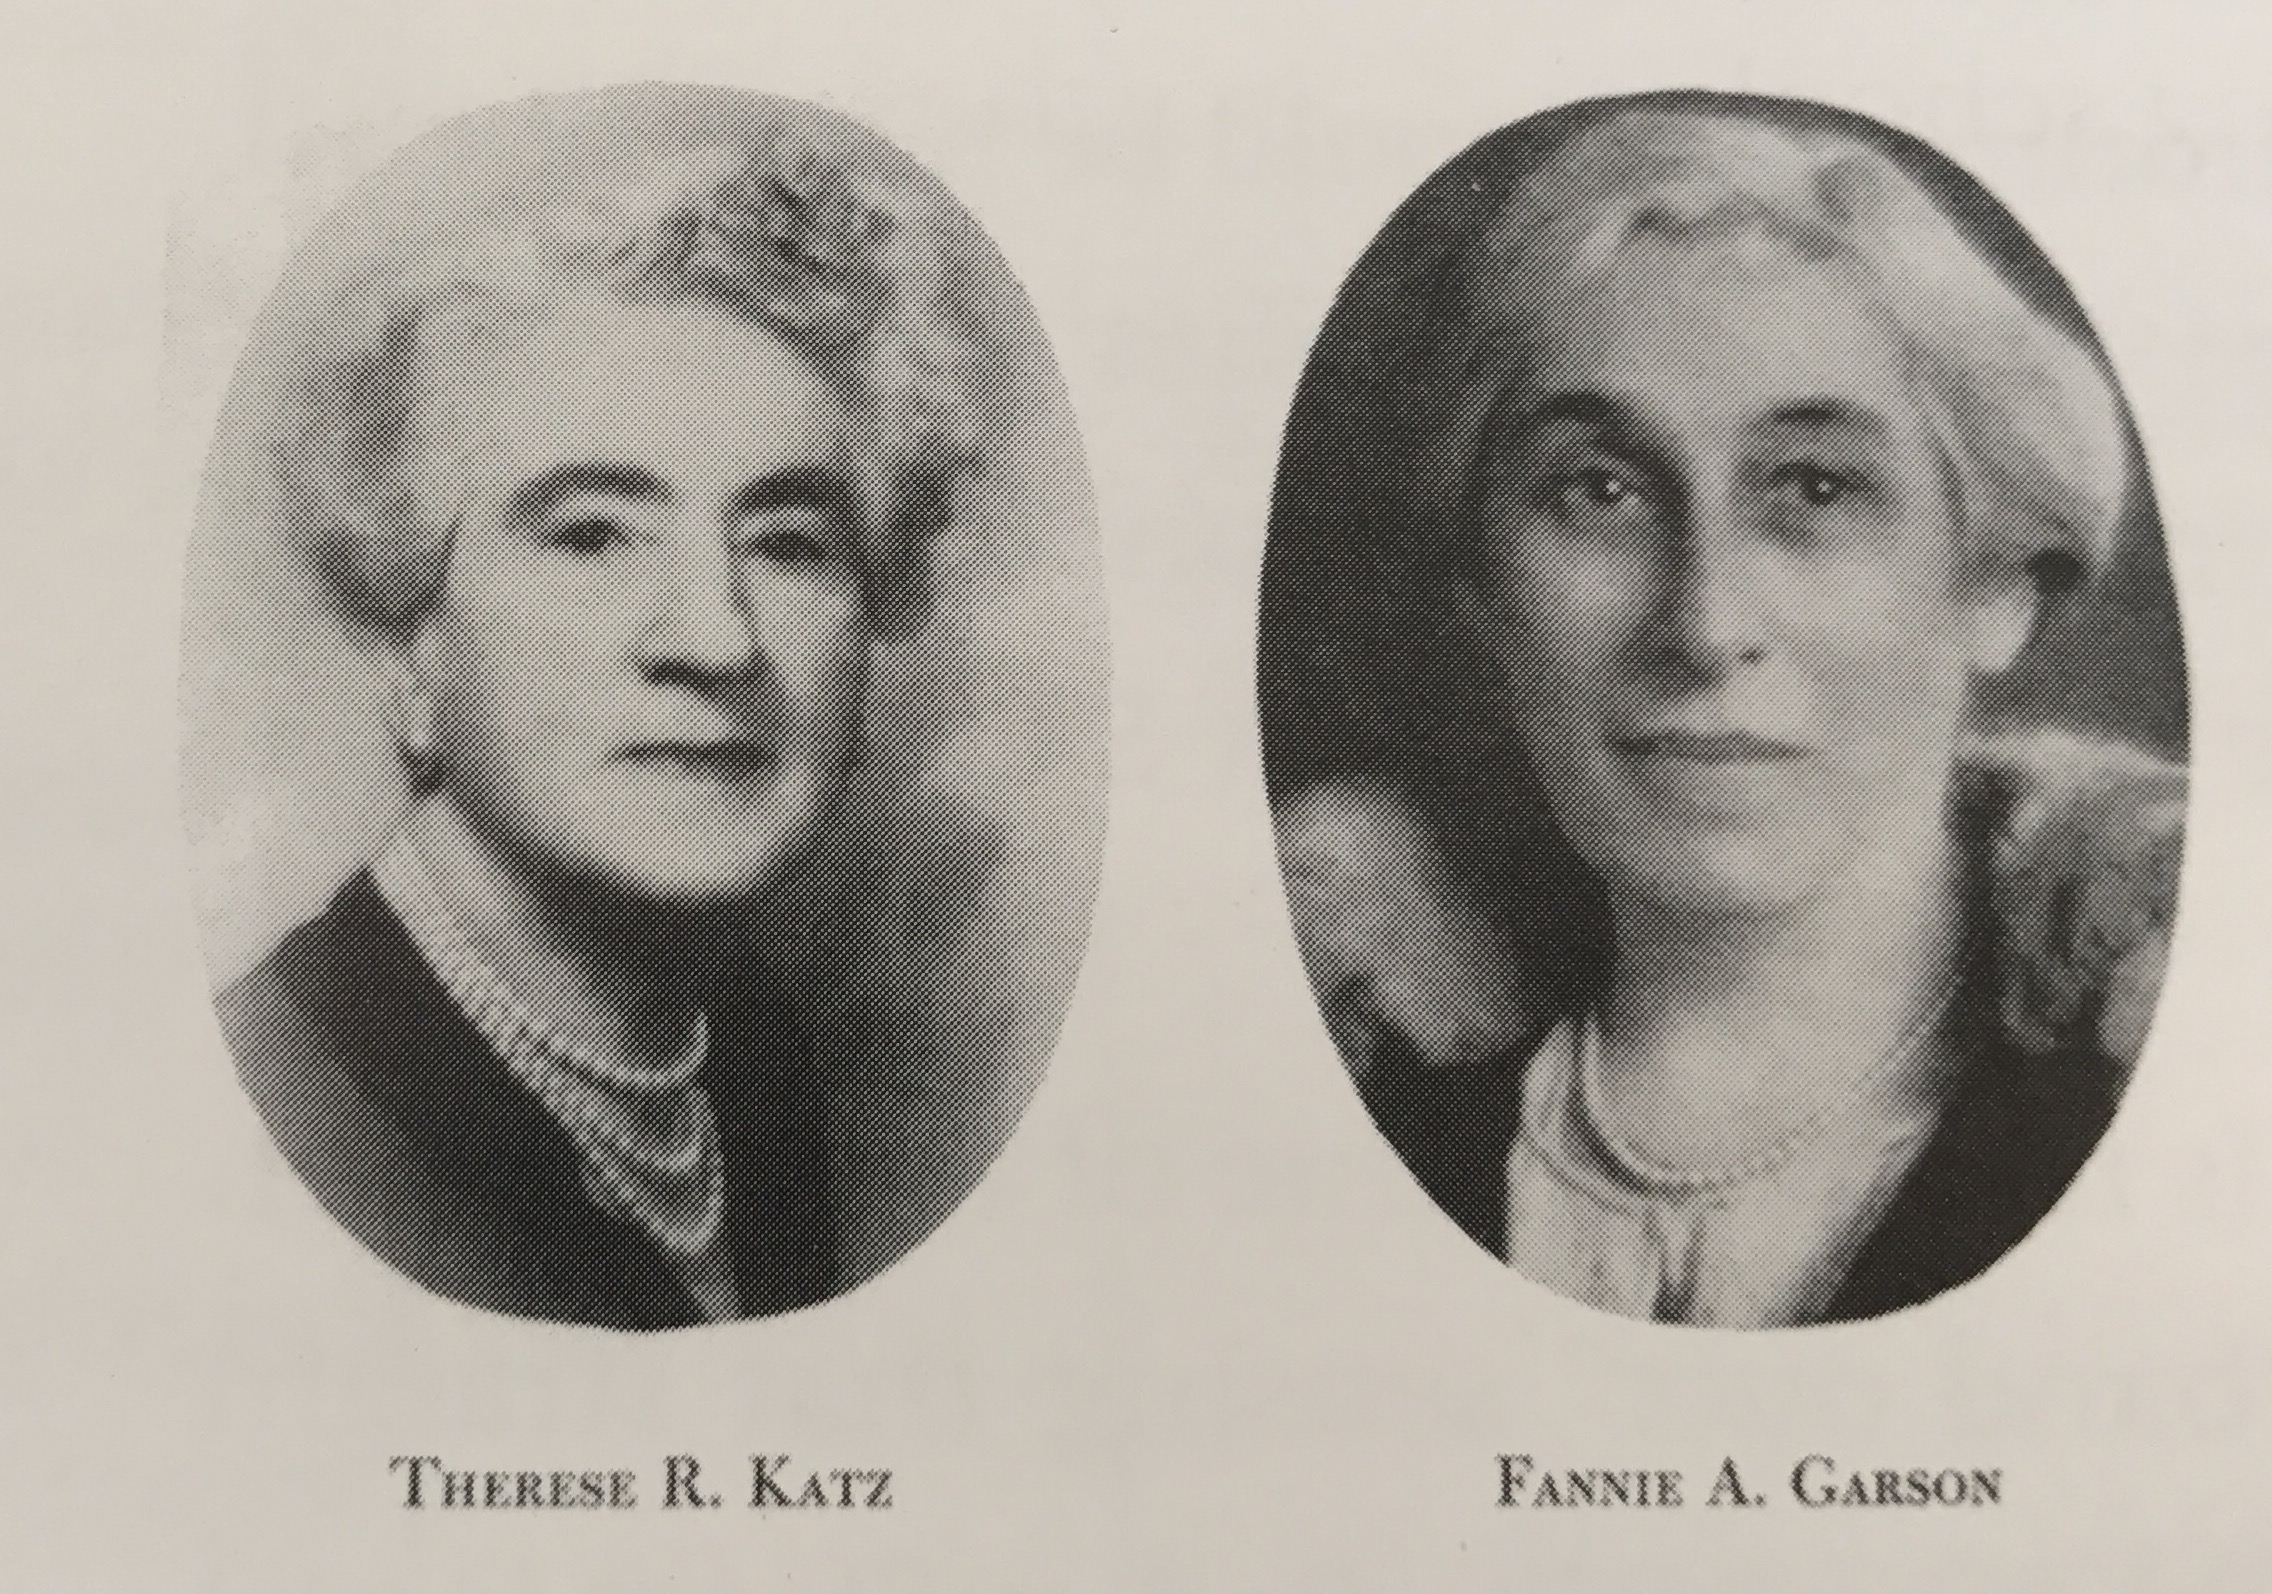 Baden Street Settlement's founders: Therese Katz and Fannie Garson